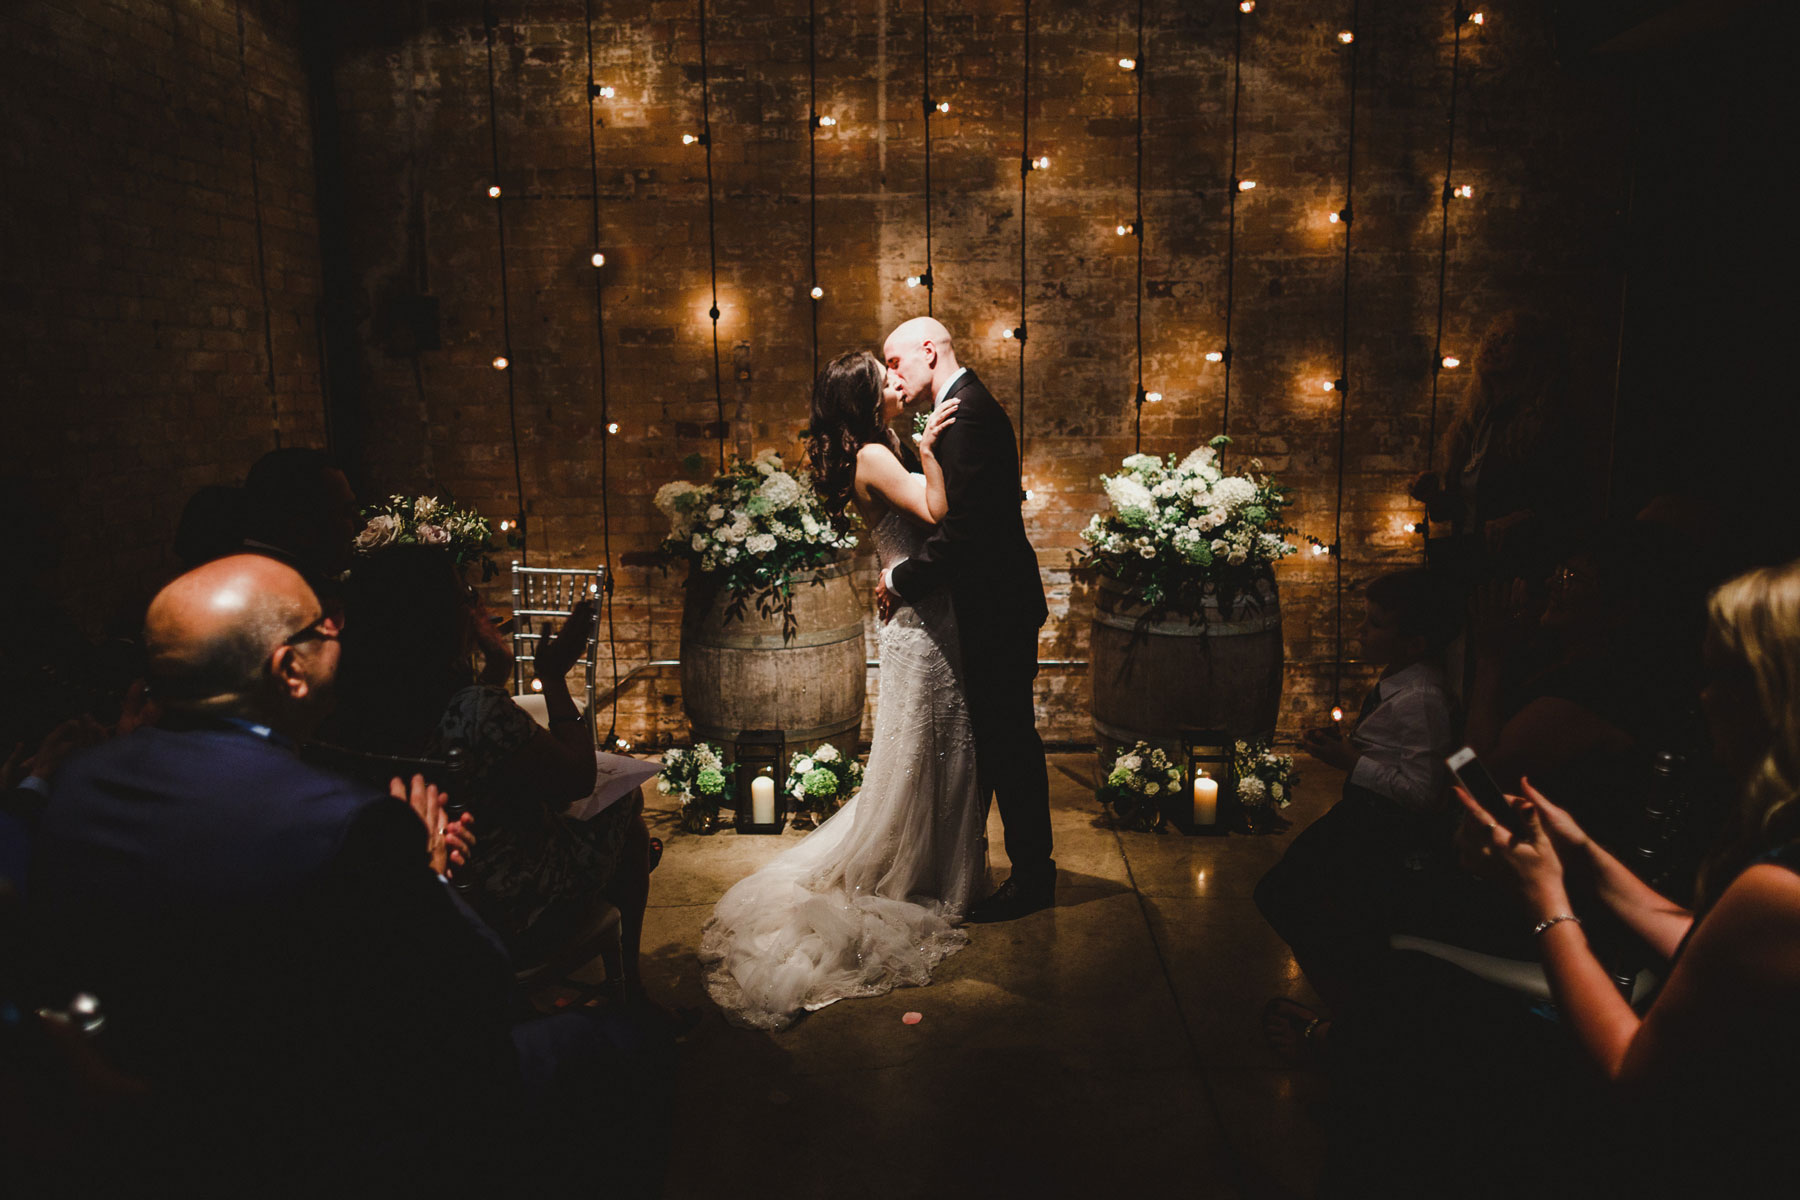 Expert Lighting Tips for Wedding Reception by Toronto Top 10 Wedding Photographer